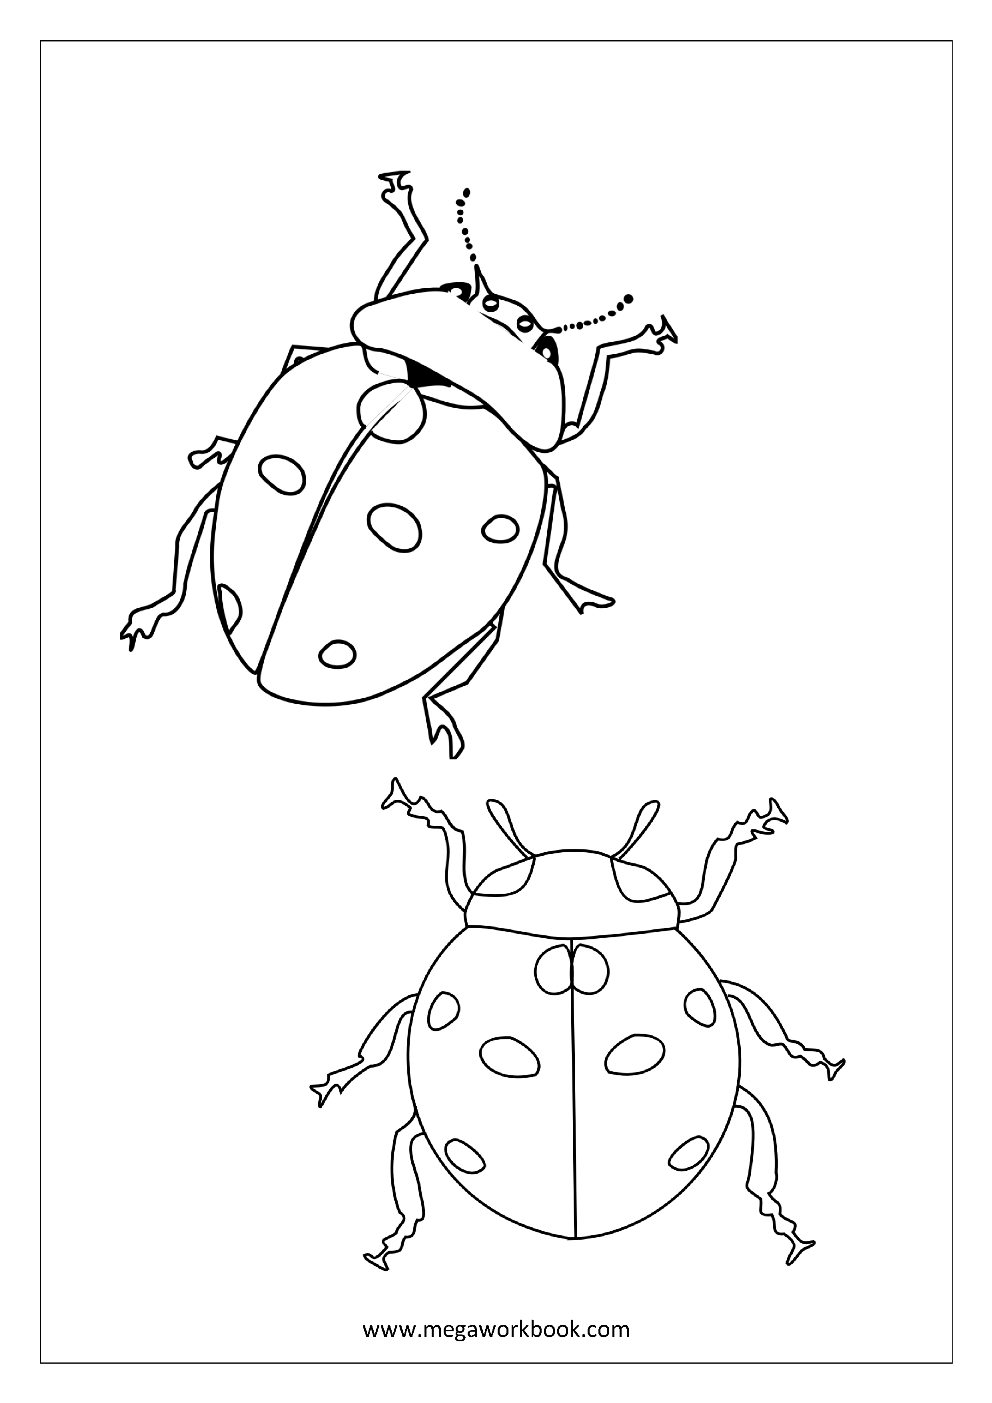 Animal Coloring Pages Sea Animals Coloring Pages Insects